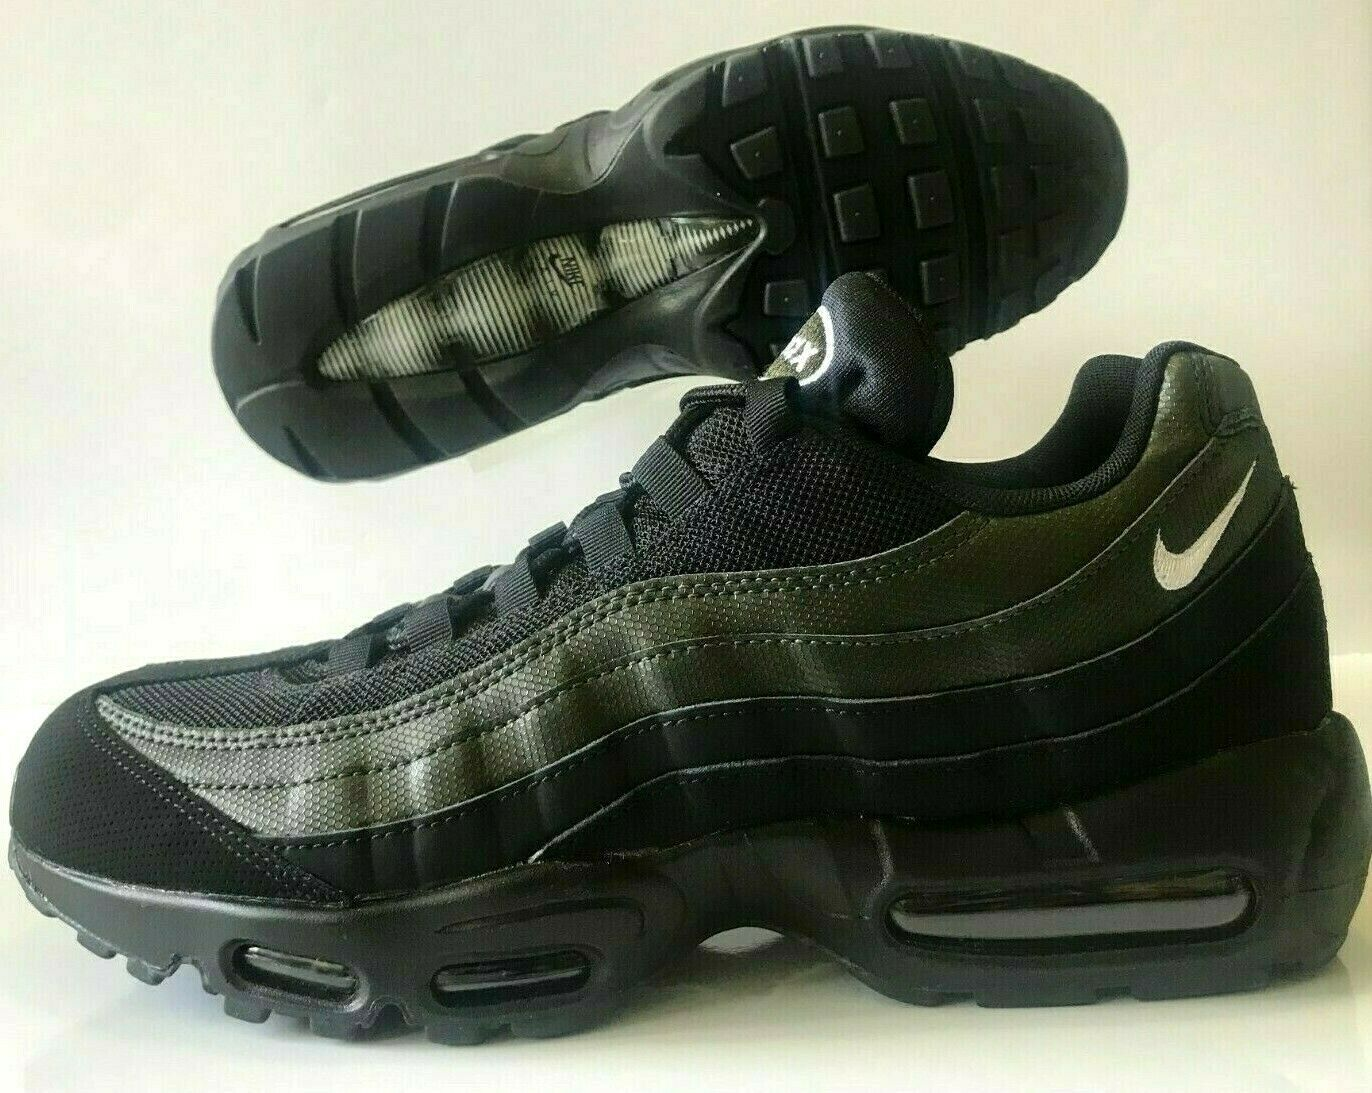 Nike Air Max 95 Essential Running shoes Black Sequoia Green Size 7 (749766-034)